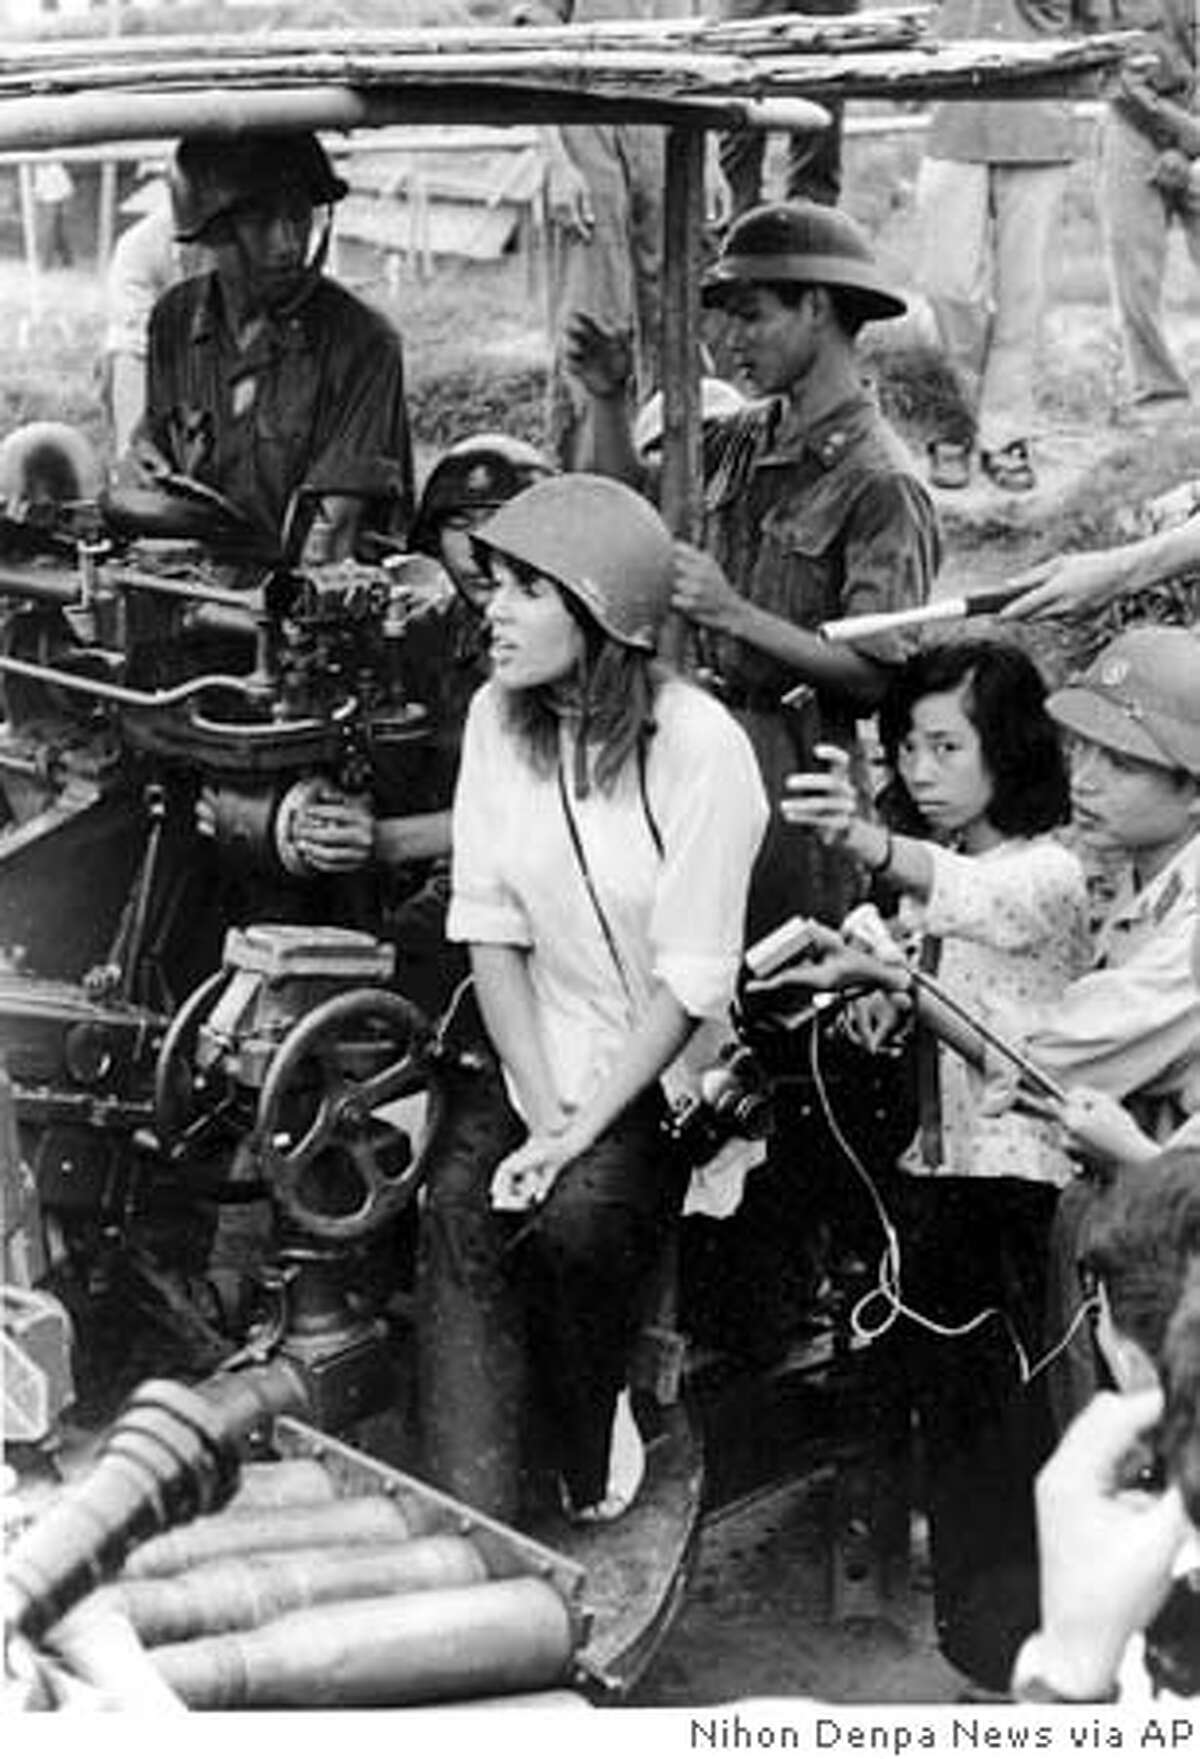 **FILE** American actress and activist Jane Fonda, surrounded by soldiers and reporters, sings an antiwar song near Hanoi during the Vietnam War in July 1972. Fonda, seated on an antiaircraft gun, is among a long line of celebrities who have waded into the treacherous waters of politics or inhternational relations. (AP Photo/NIHON DENPA NEWS) CAT JAPAN OUT. B/W PHOTO ONJLY.